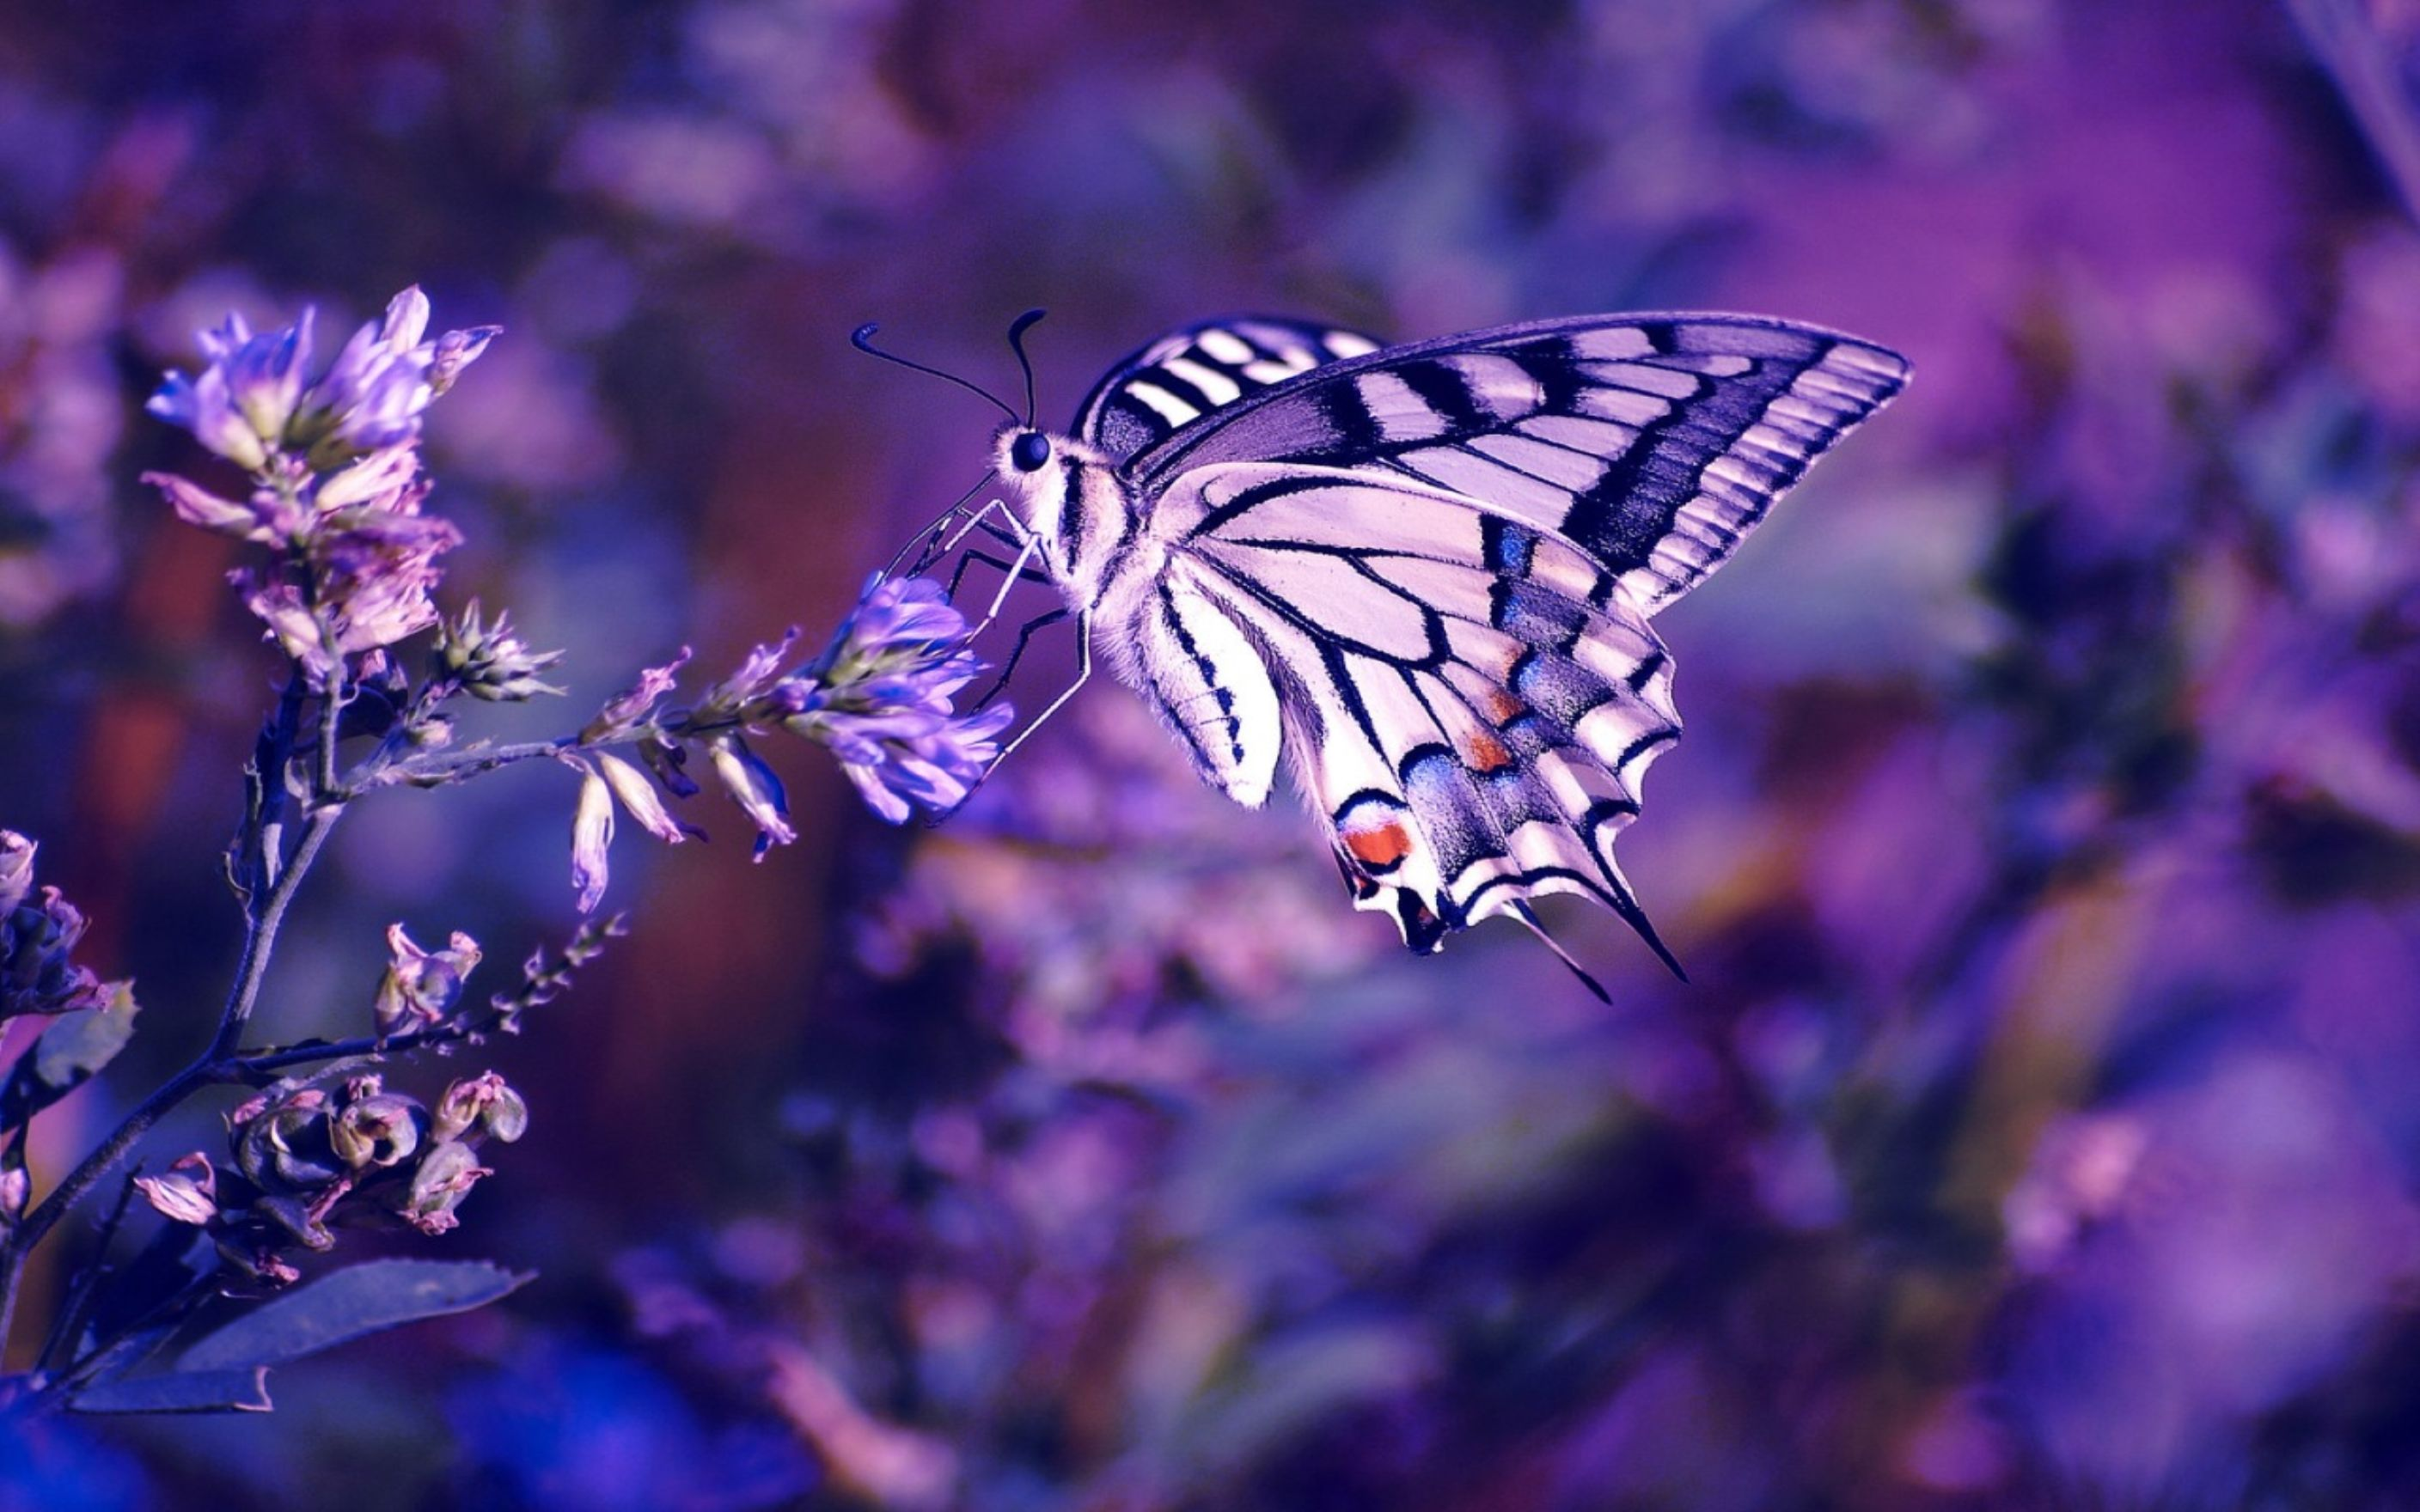 butterfly on the flowers wallpaper: desktop hd wallpaper - download